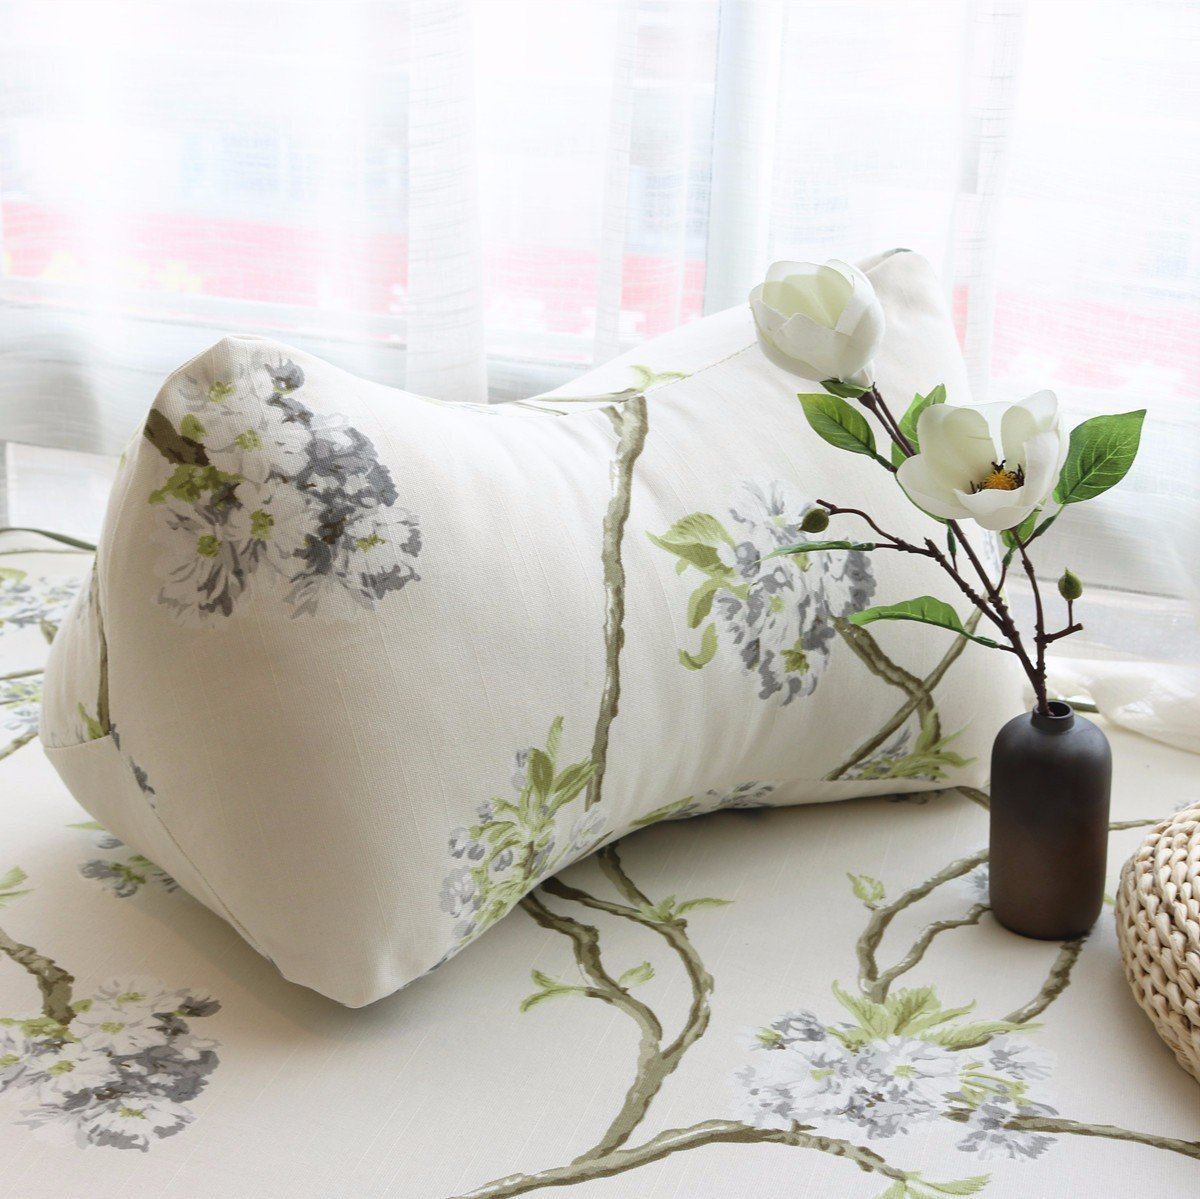 HOMEE Country Style Bedroom Drift Pane Pillow Idyllic Leather Sofa Cushion the Bed Sleeping Pillow ,5555 Lunch,The bones Pillow